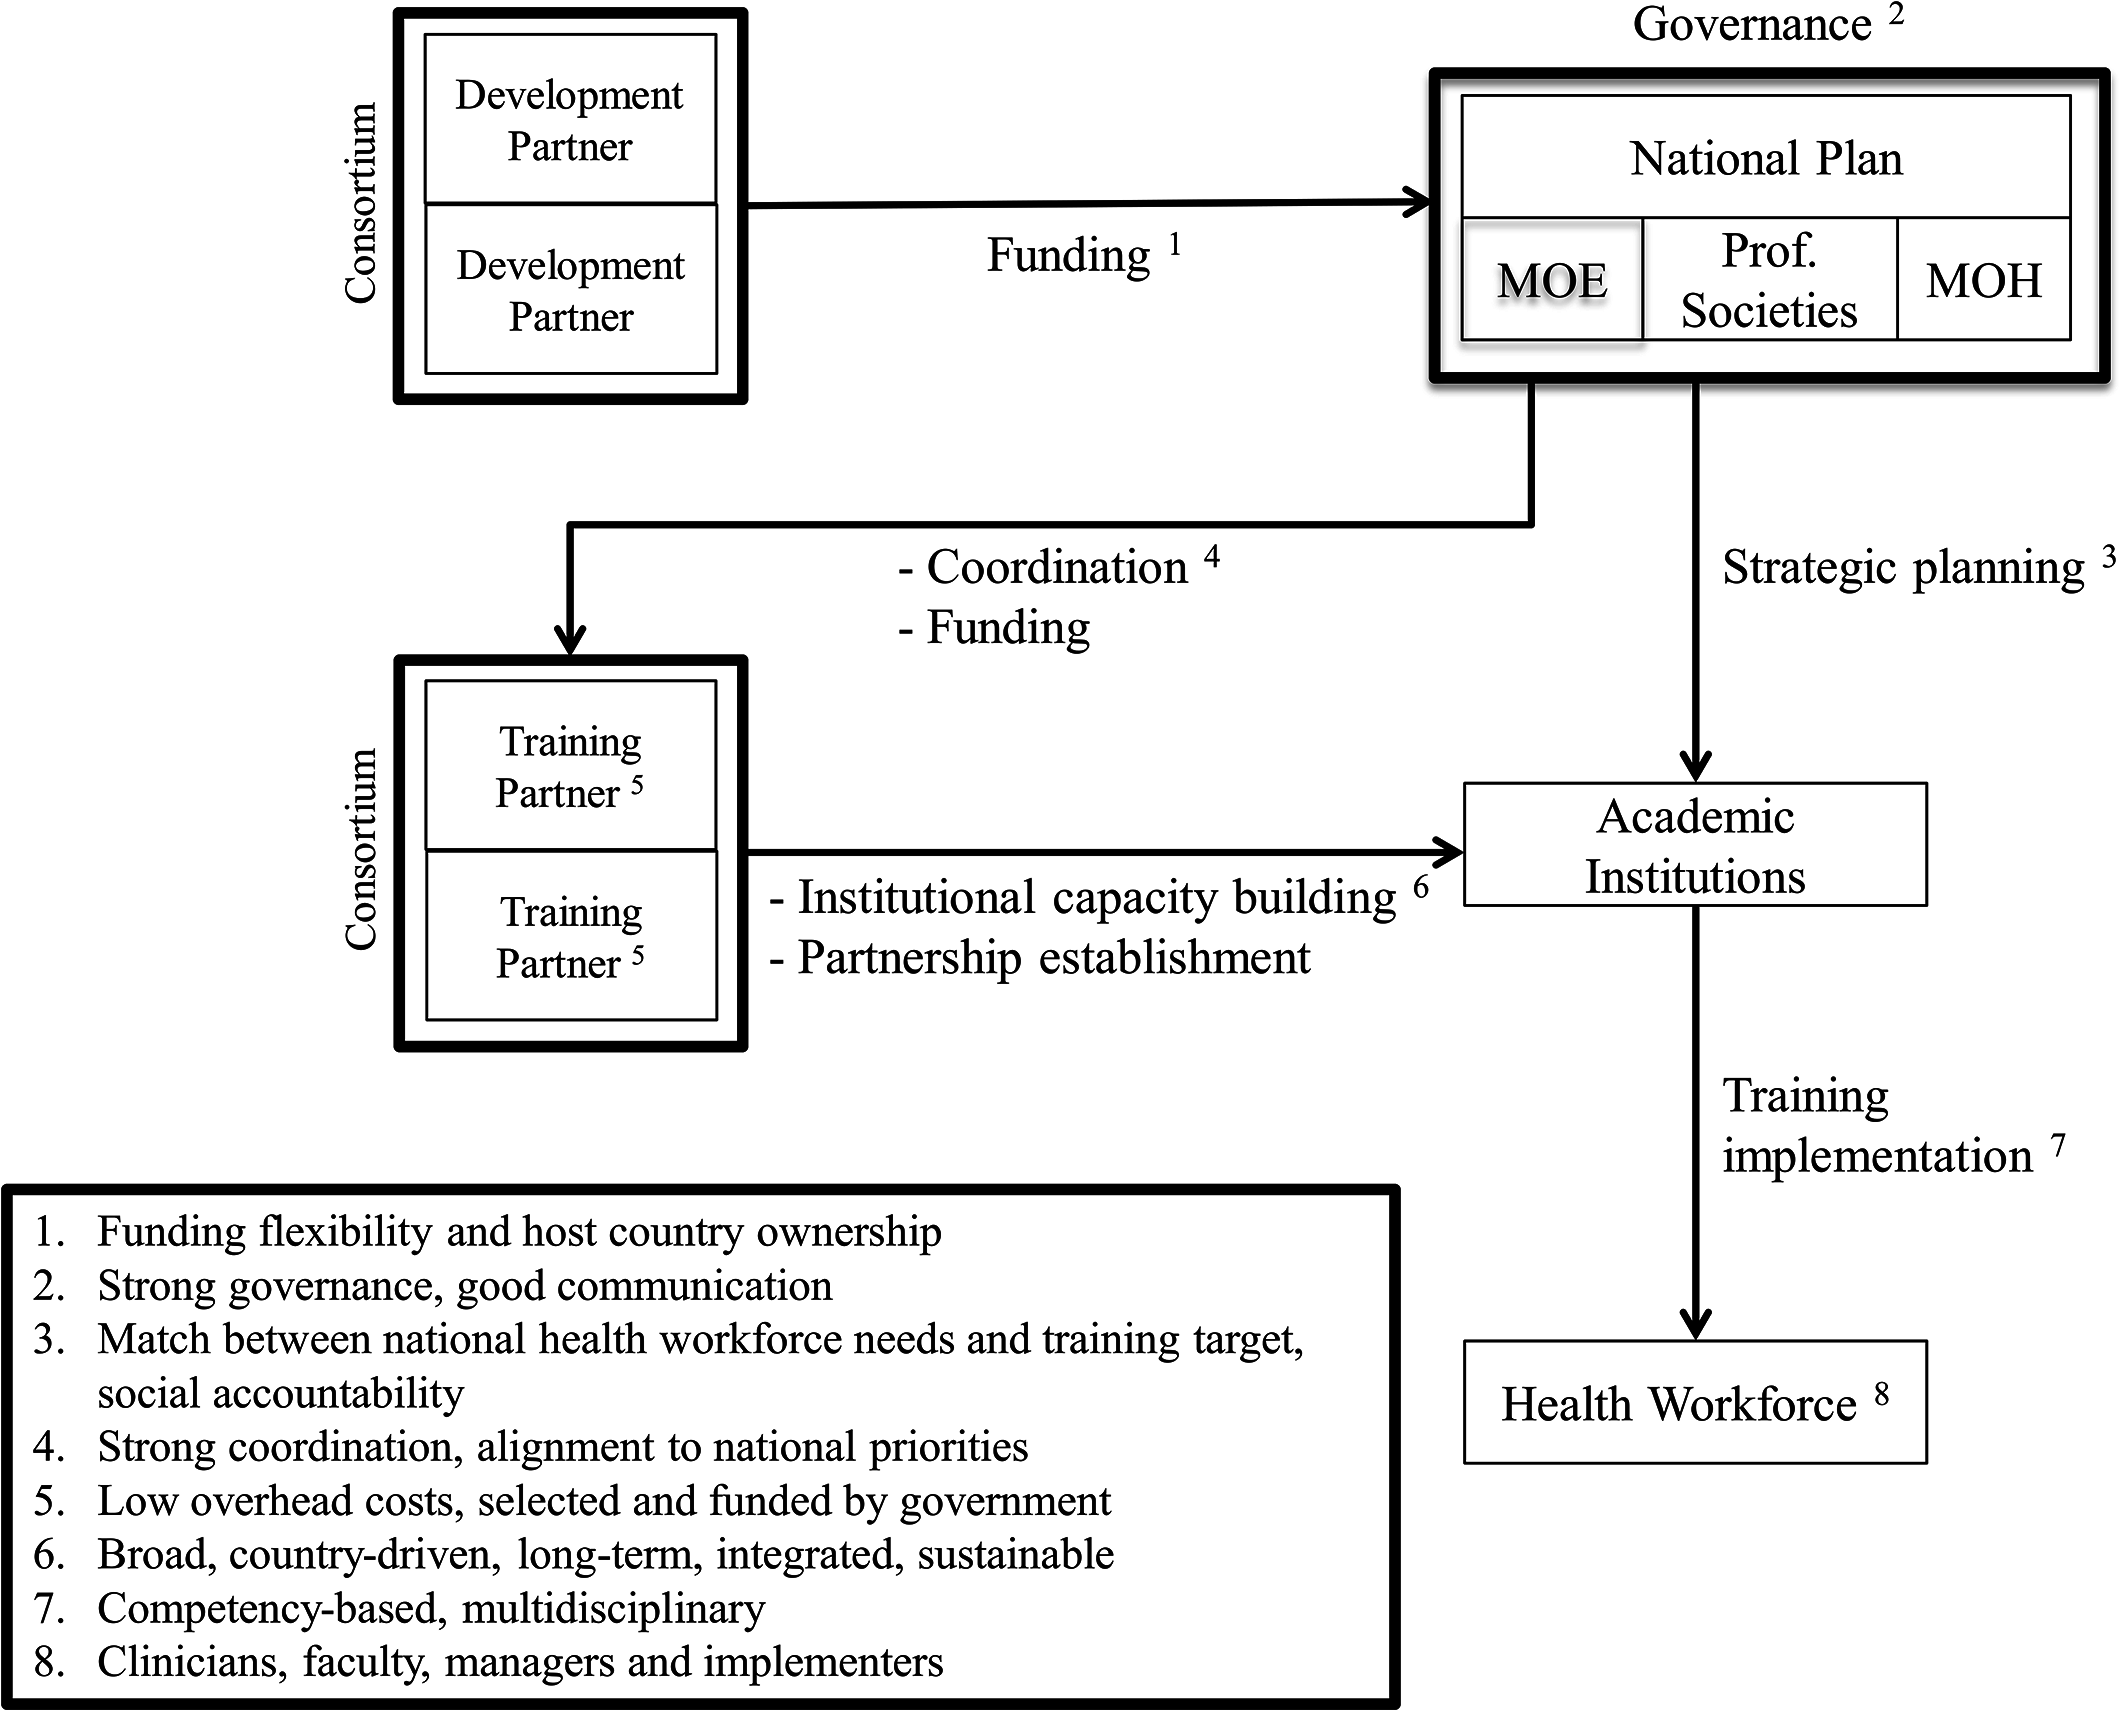 Proposed new framework and practices for training initiatives aimed at health professionals in low-income countries.